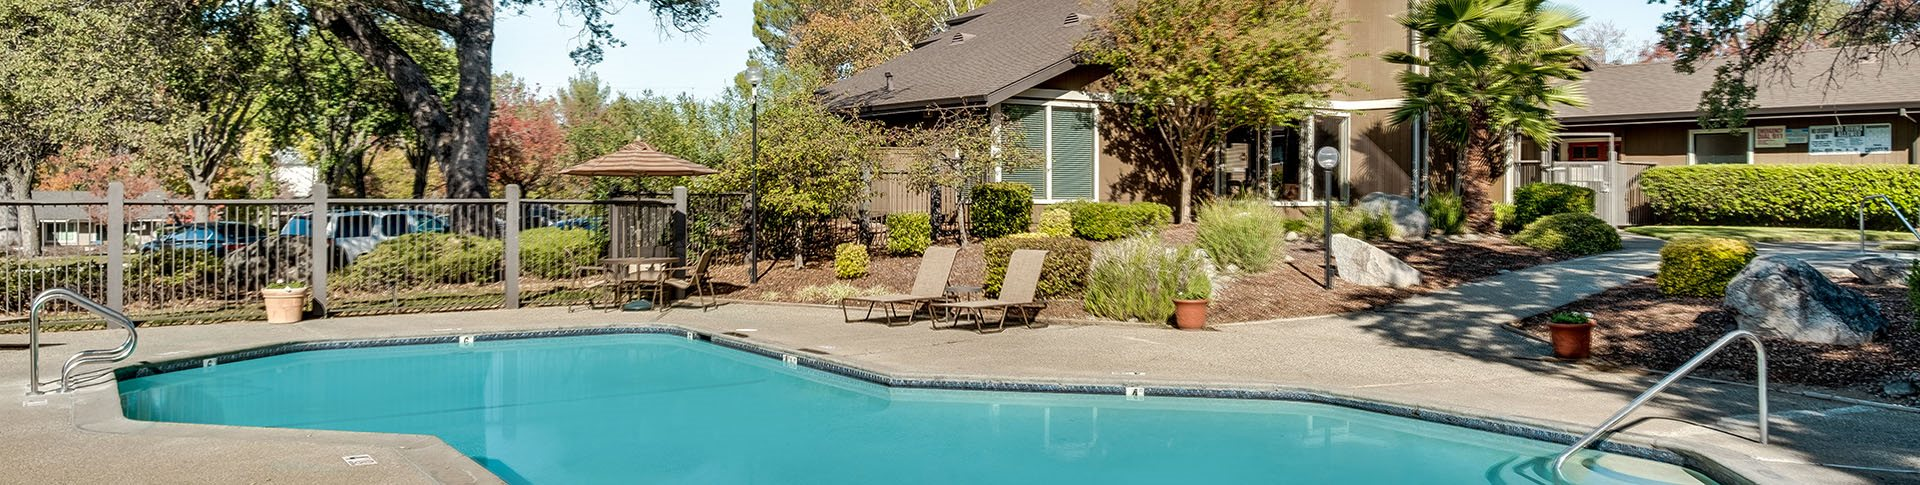 Sutter Ridge Pool with lounge chairs and landscape